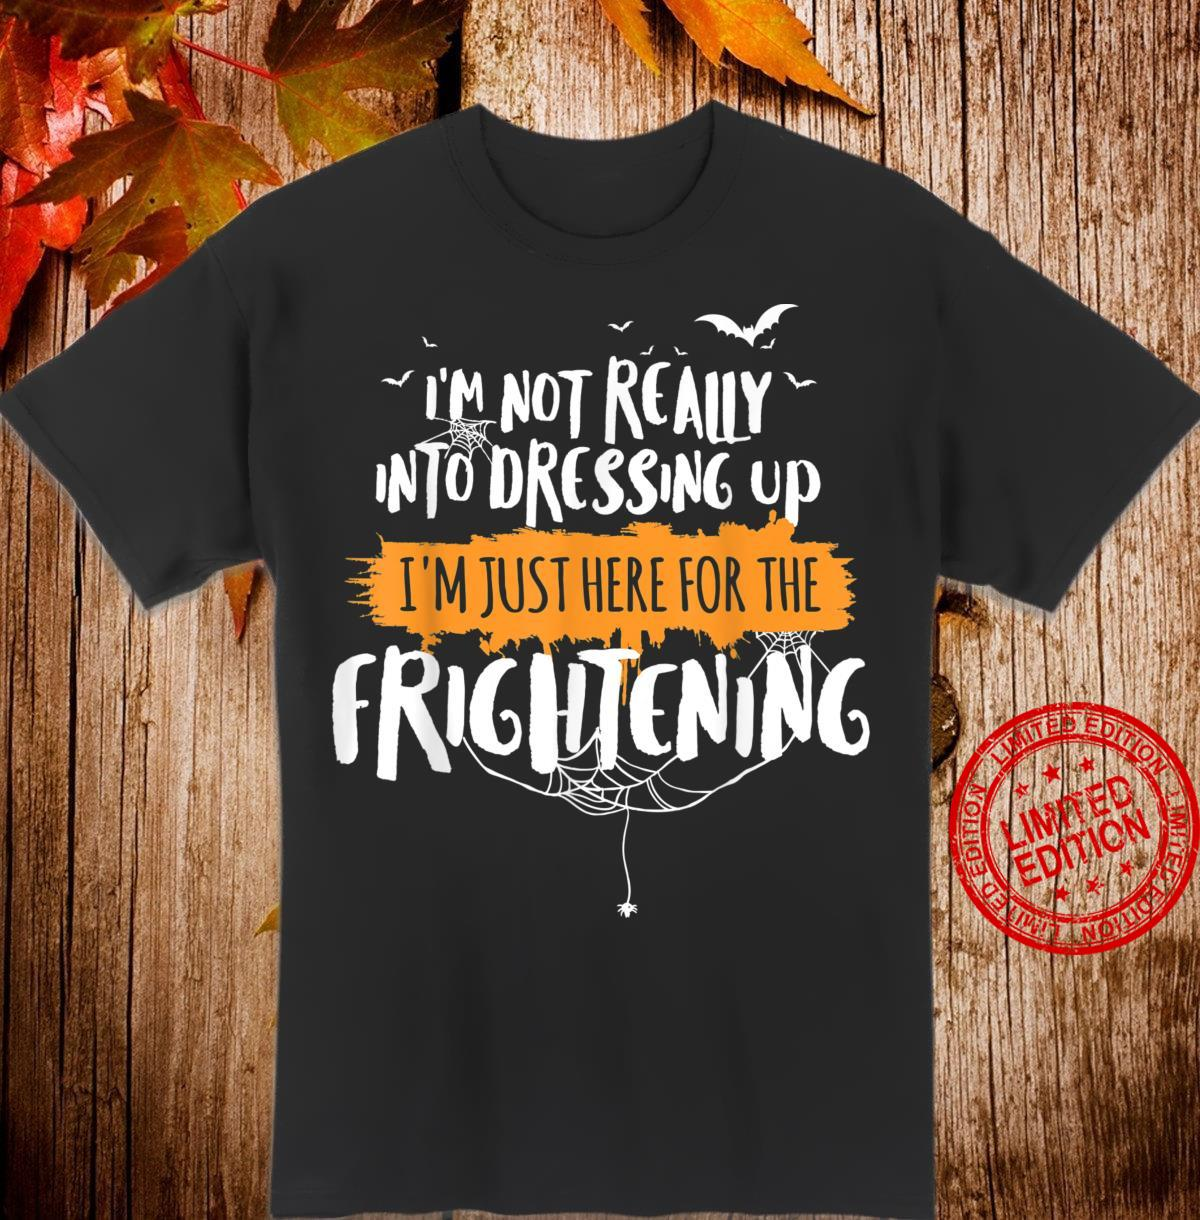 Funny Halloween Shirt Here for Frightening Shirt